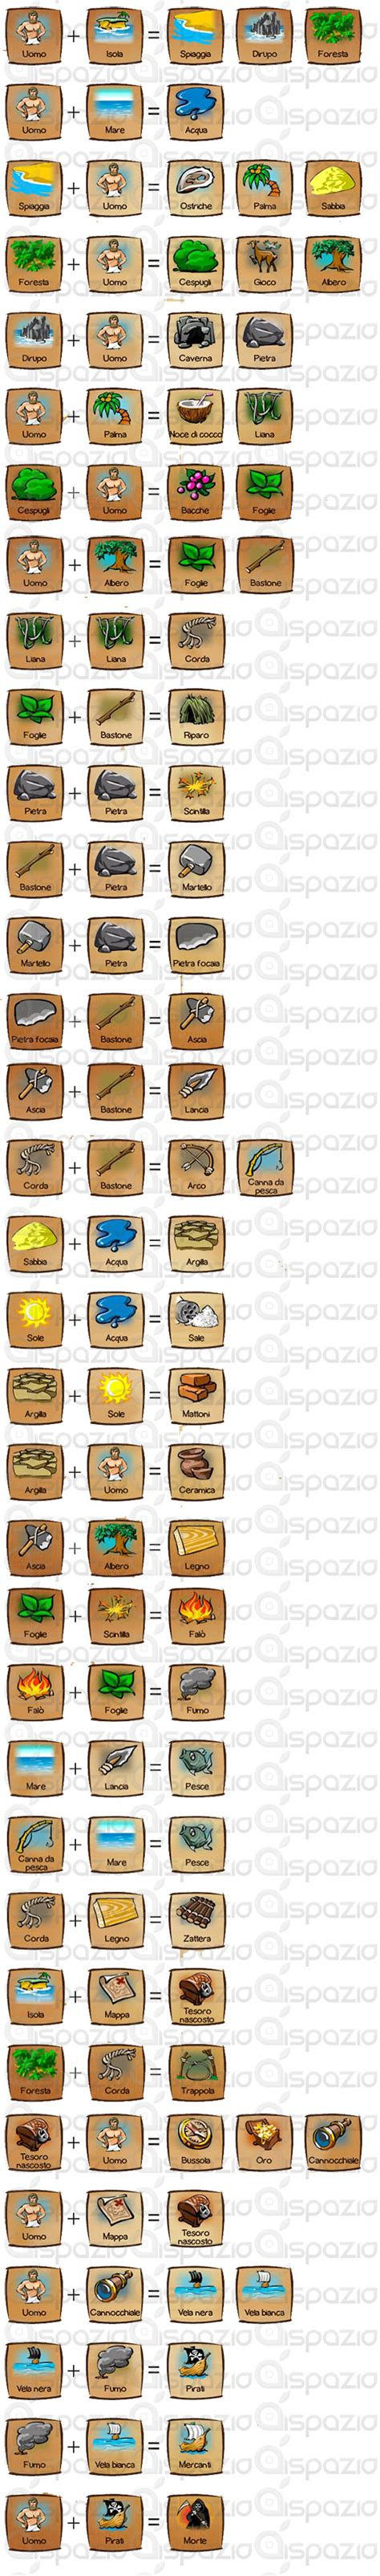 doodle god quests cheats doodle god walkthrough completiamo al 100 sopravvissuto